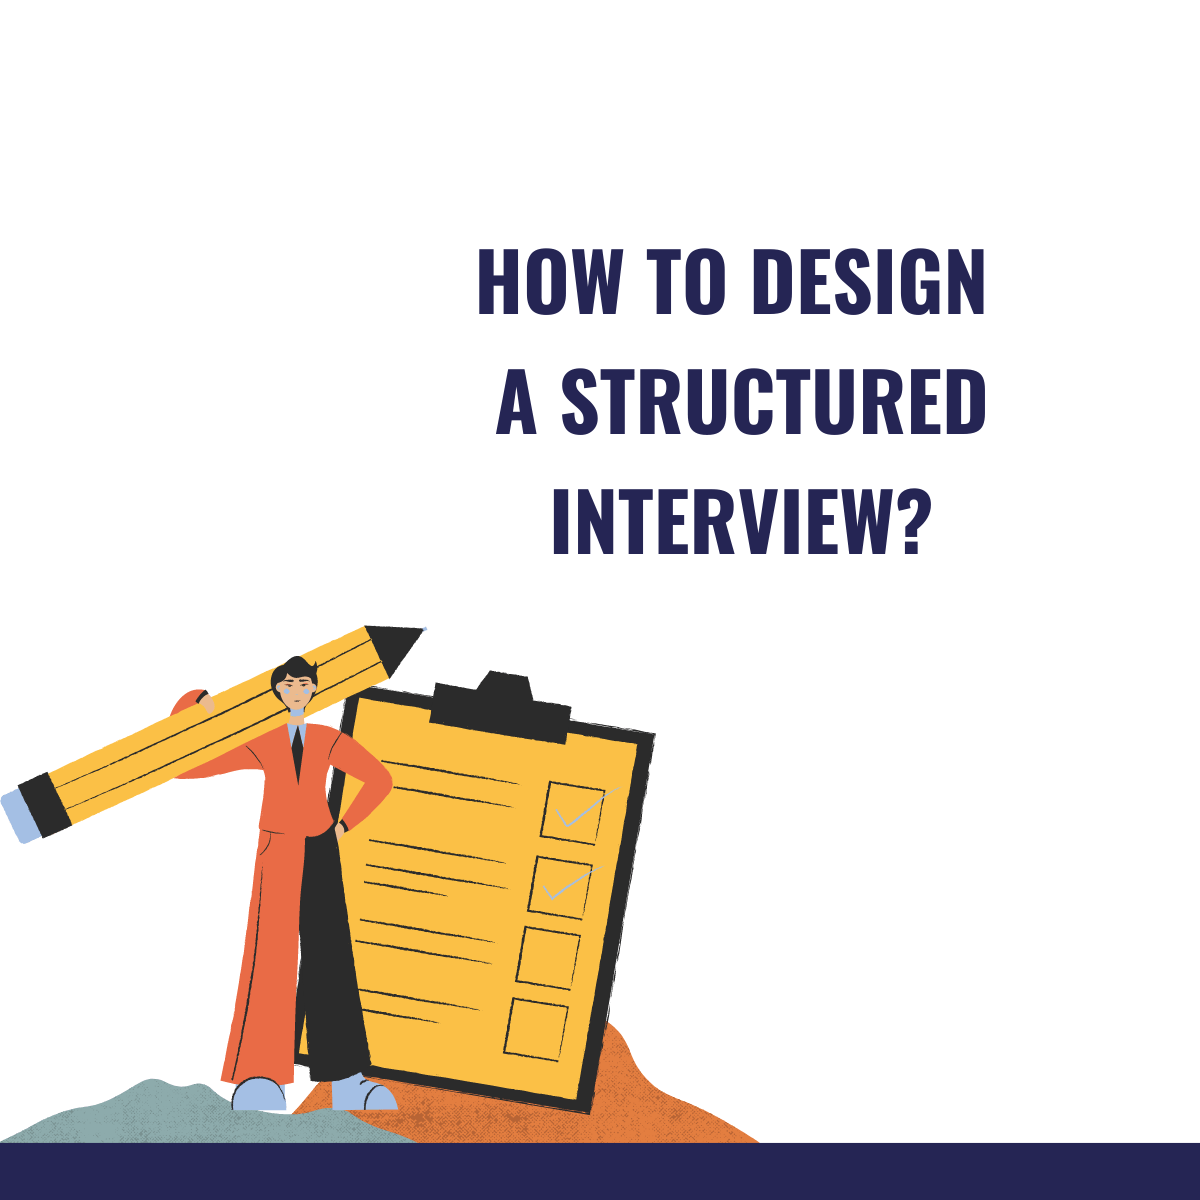 Person and pencil and text tile on how to design a structured interview